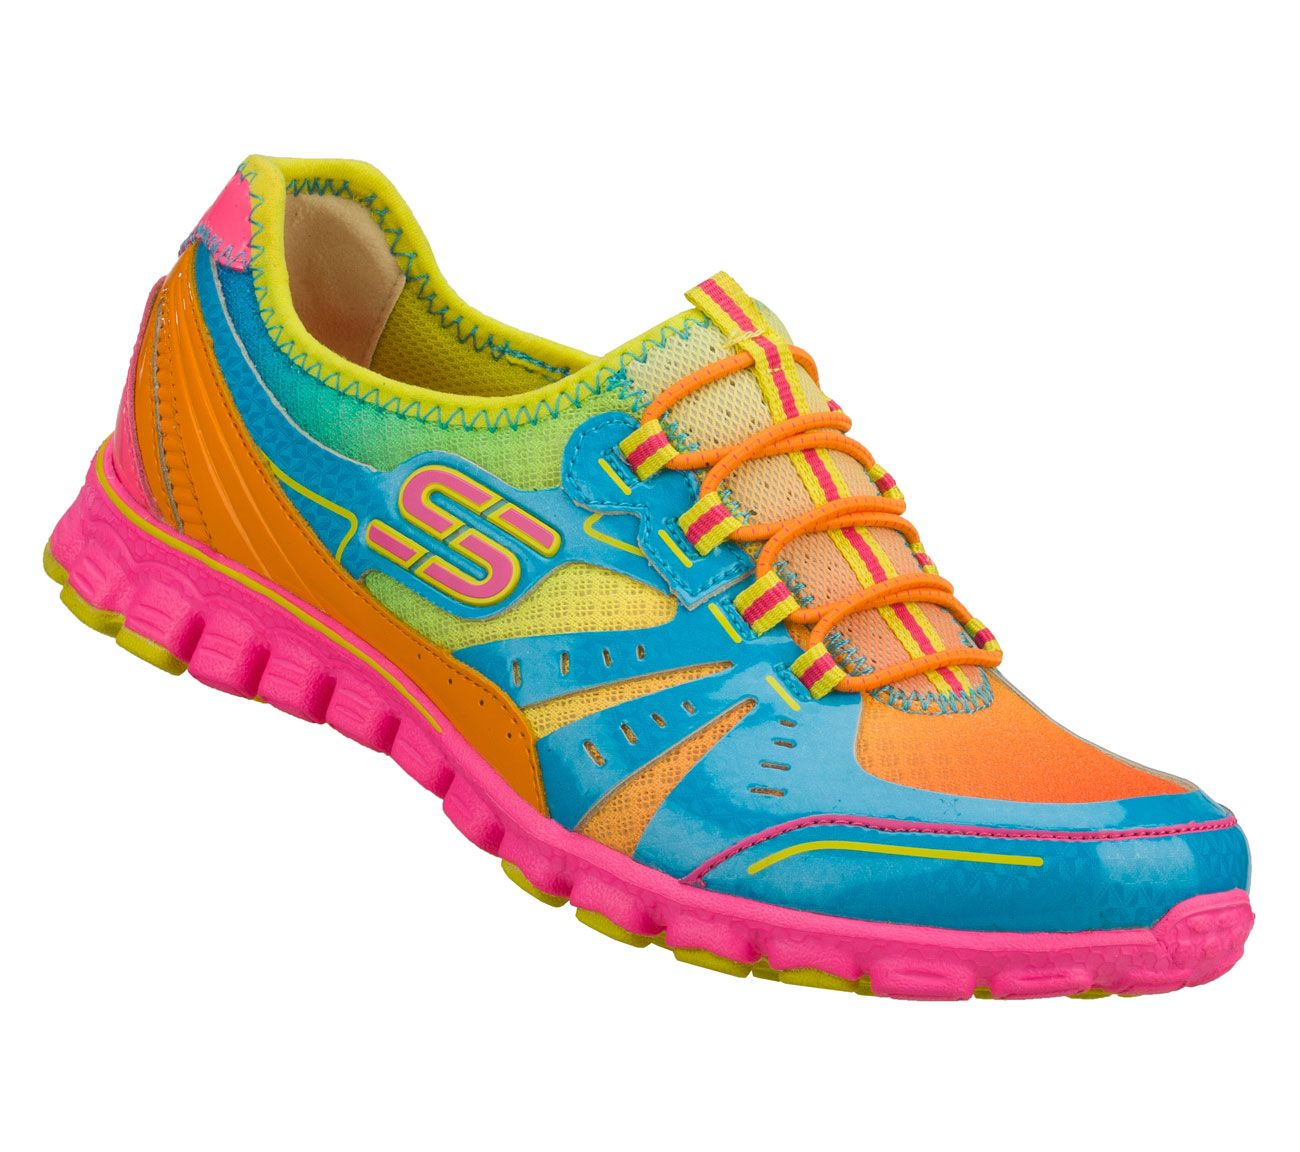 célula Monopolio candidato  AAAaaaaahhhhh love the colours!!!! work out clothes are always black! these  would make me sooo happy to workout i…   Sneakers fashion, Skechers,  Skechers mens shoes